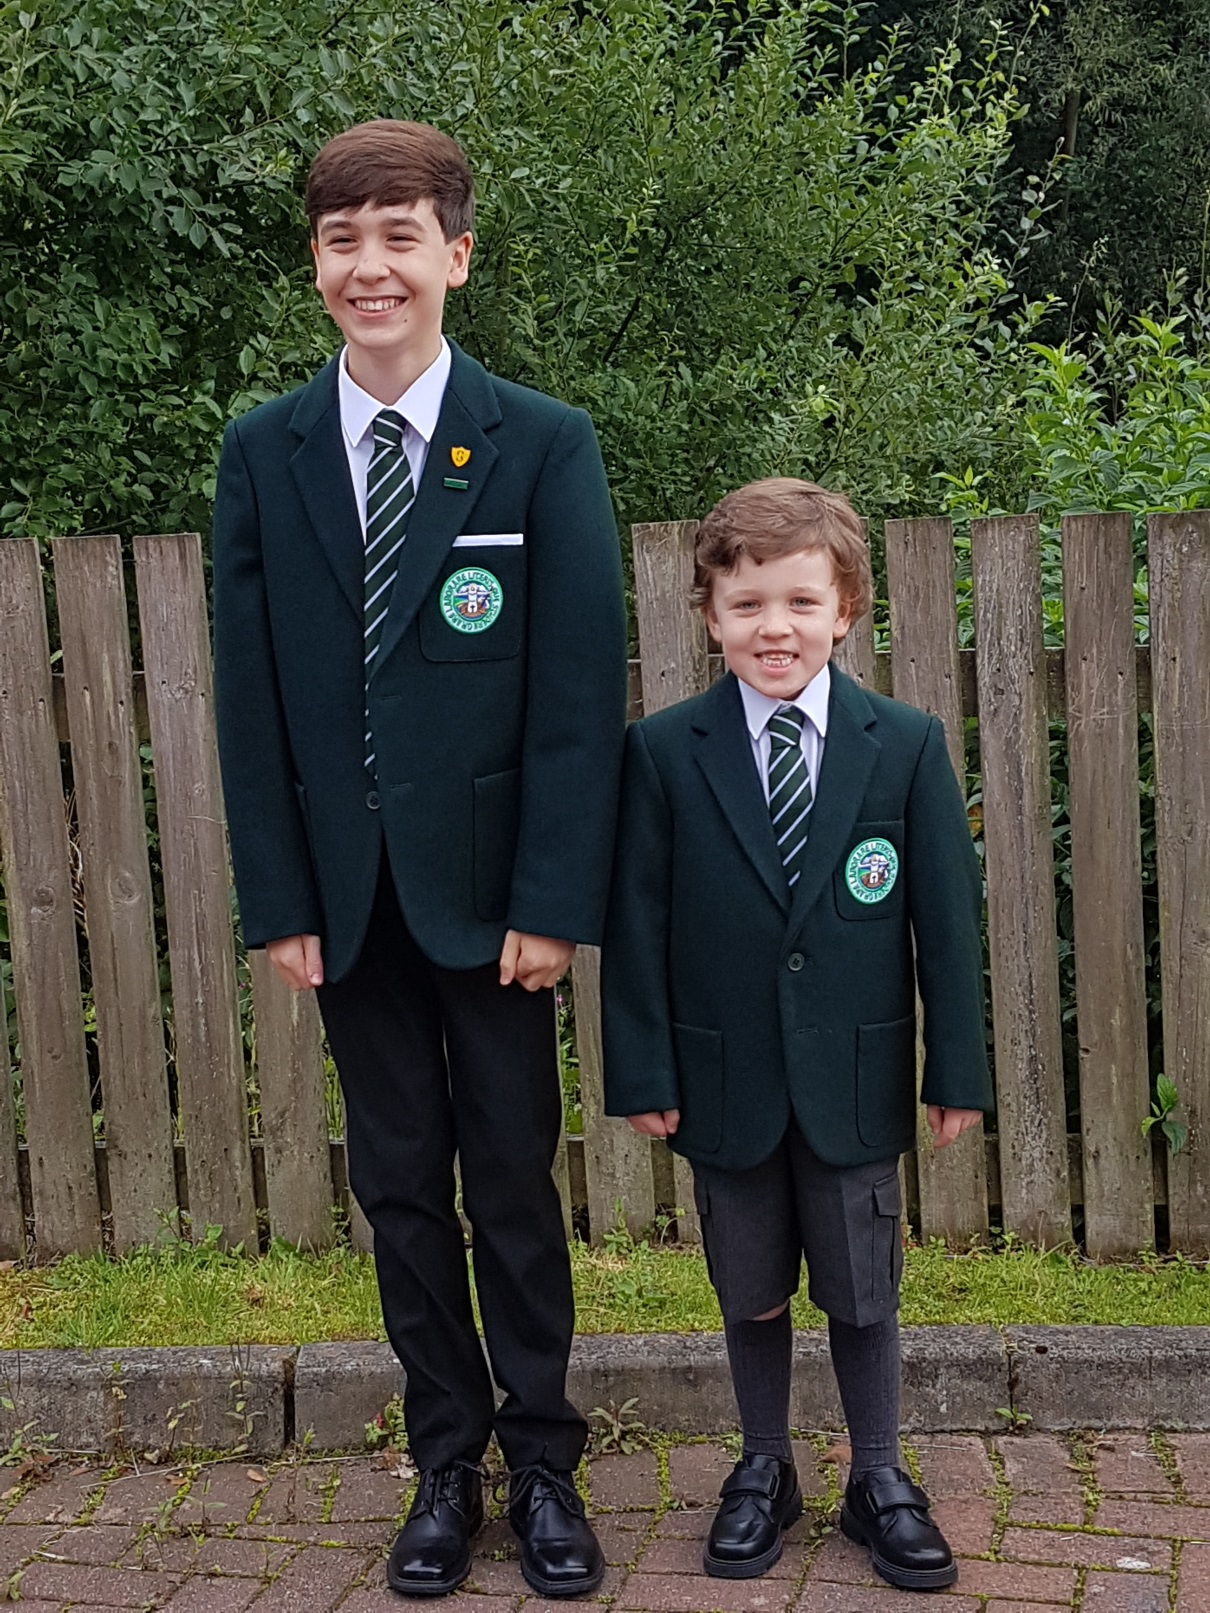 St Columba's Back to School Aug 2018